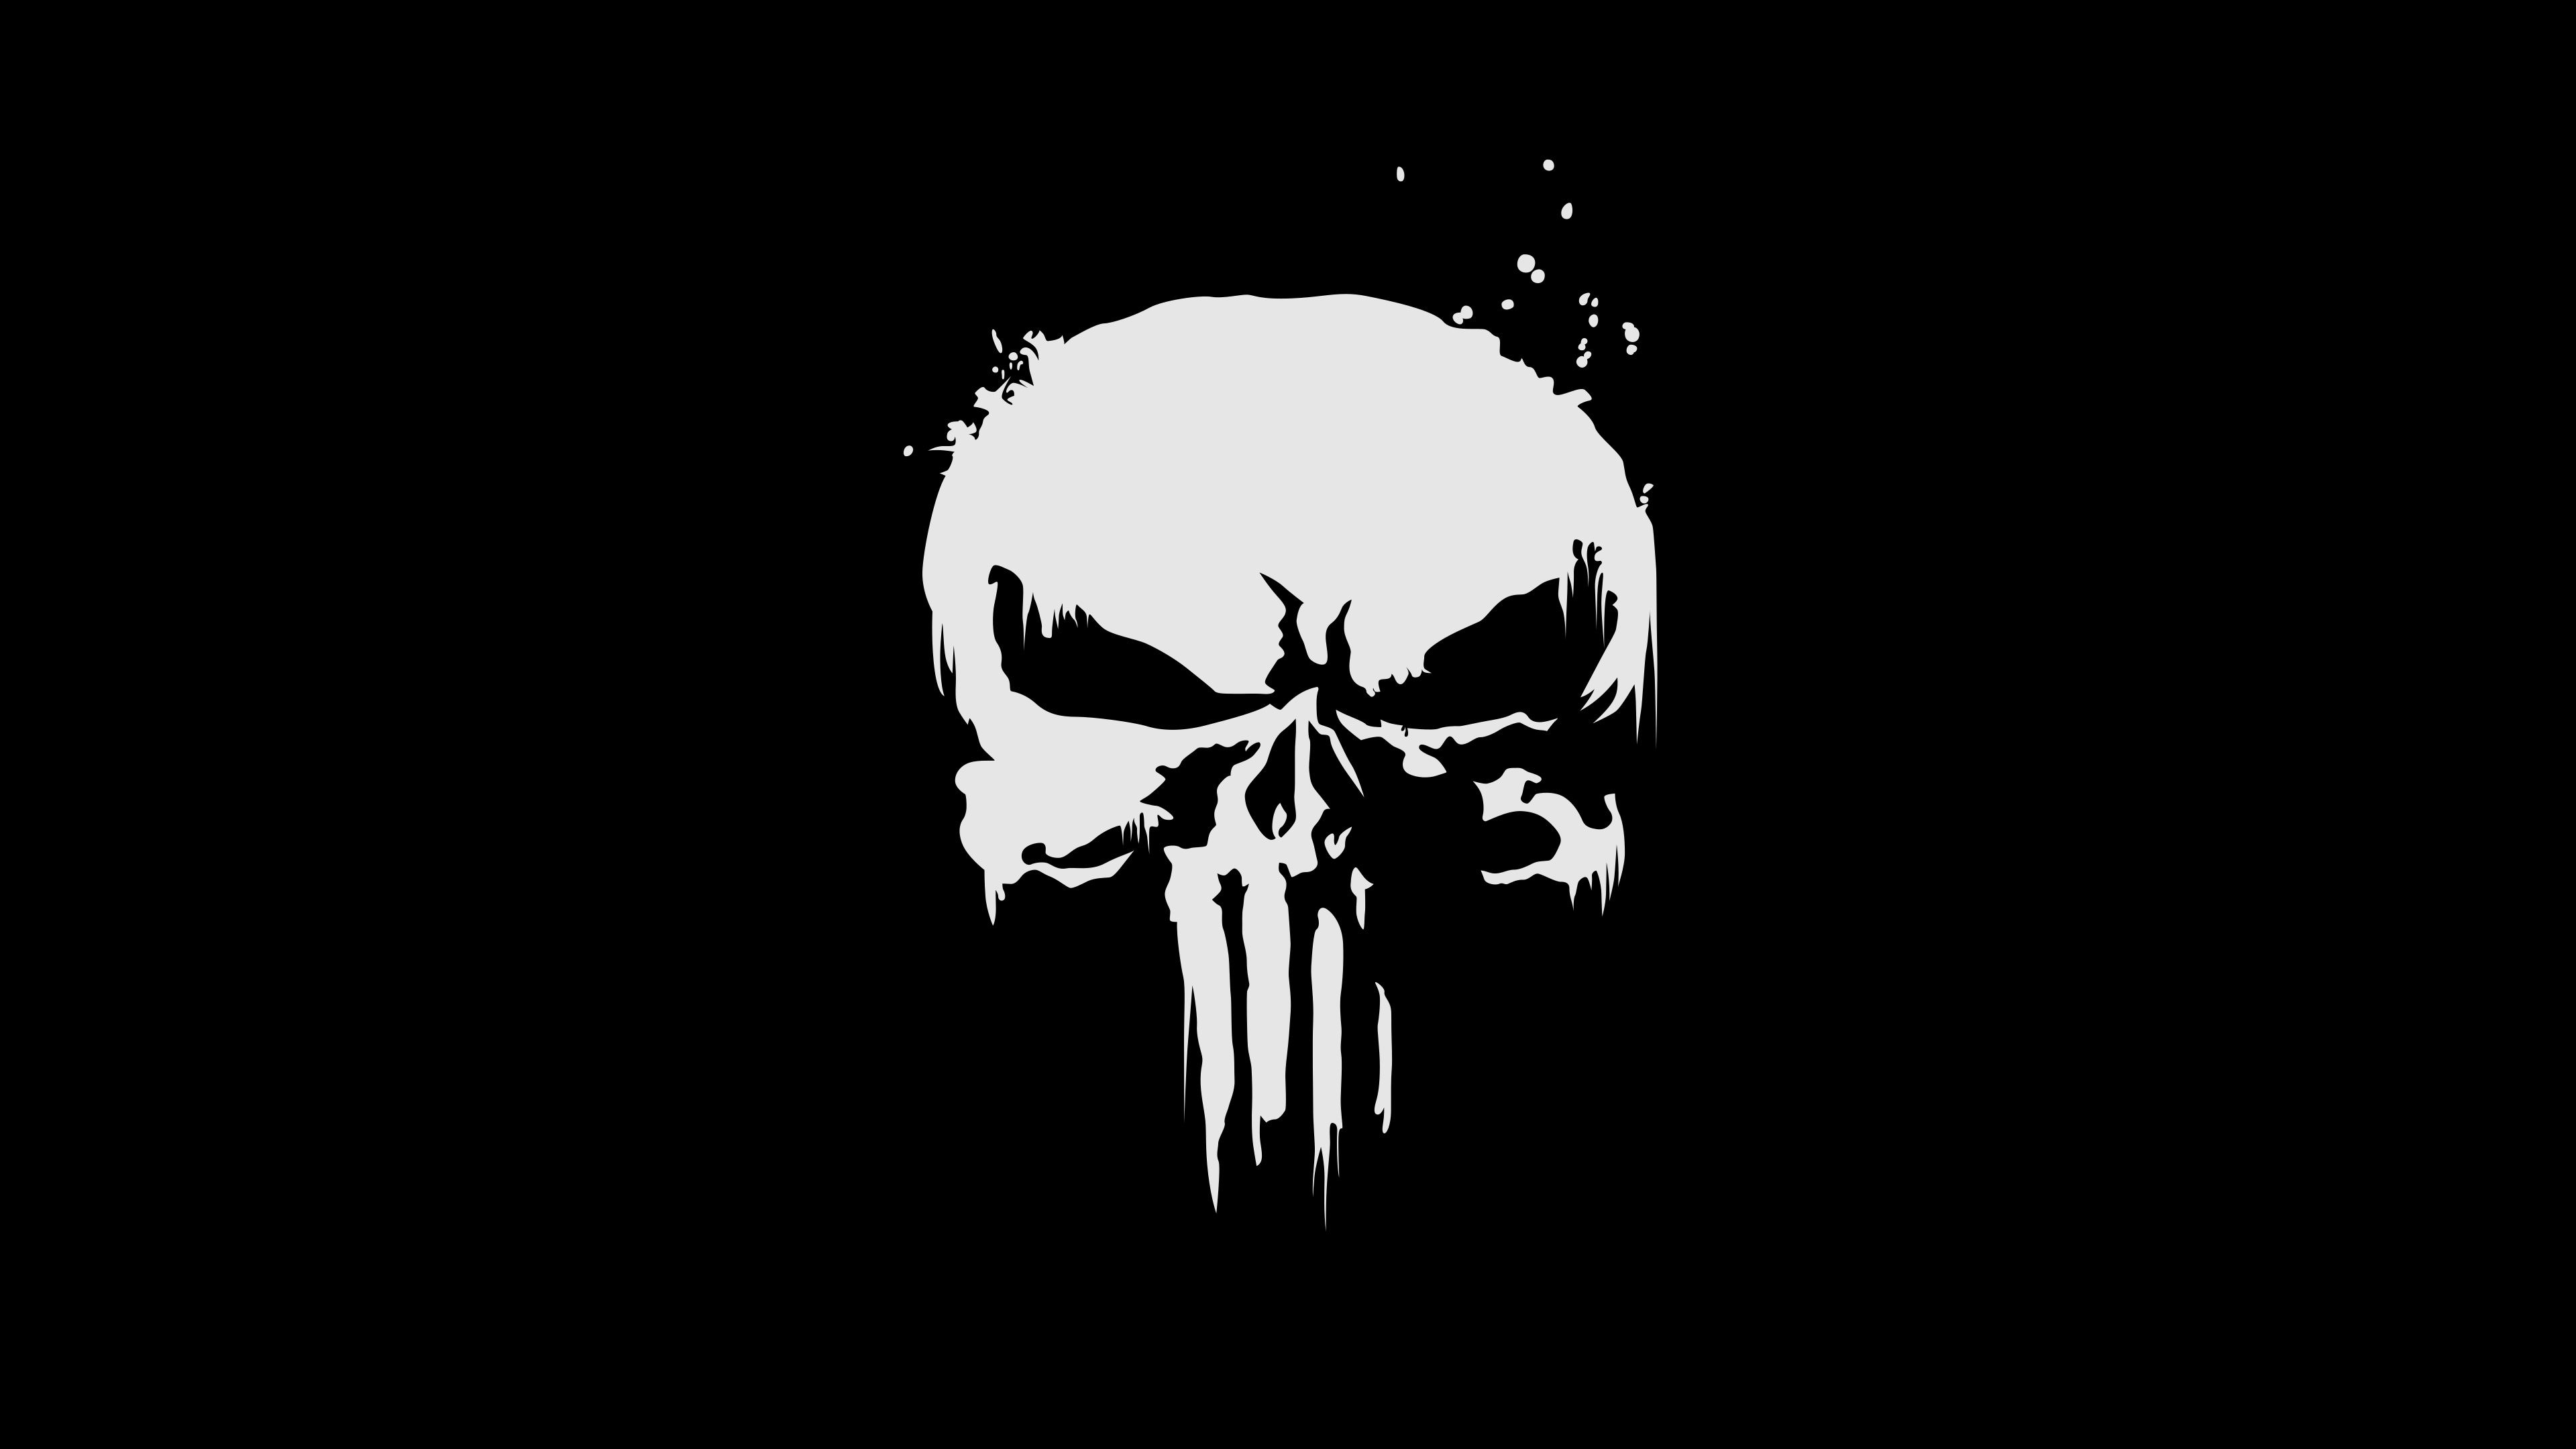 punisher logo wallpapers - photo #7